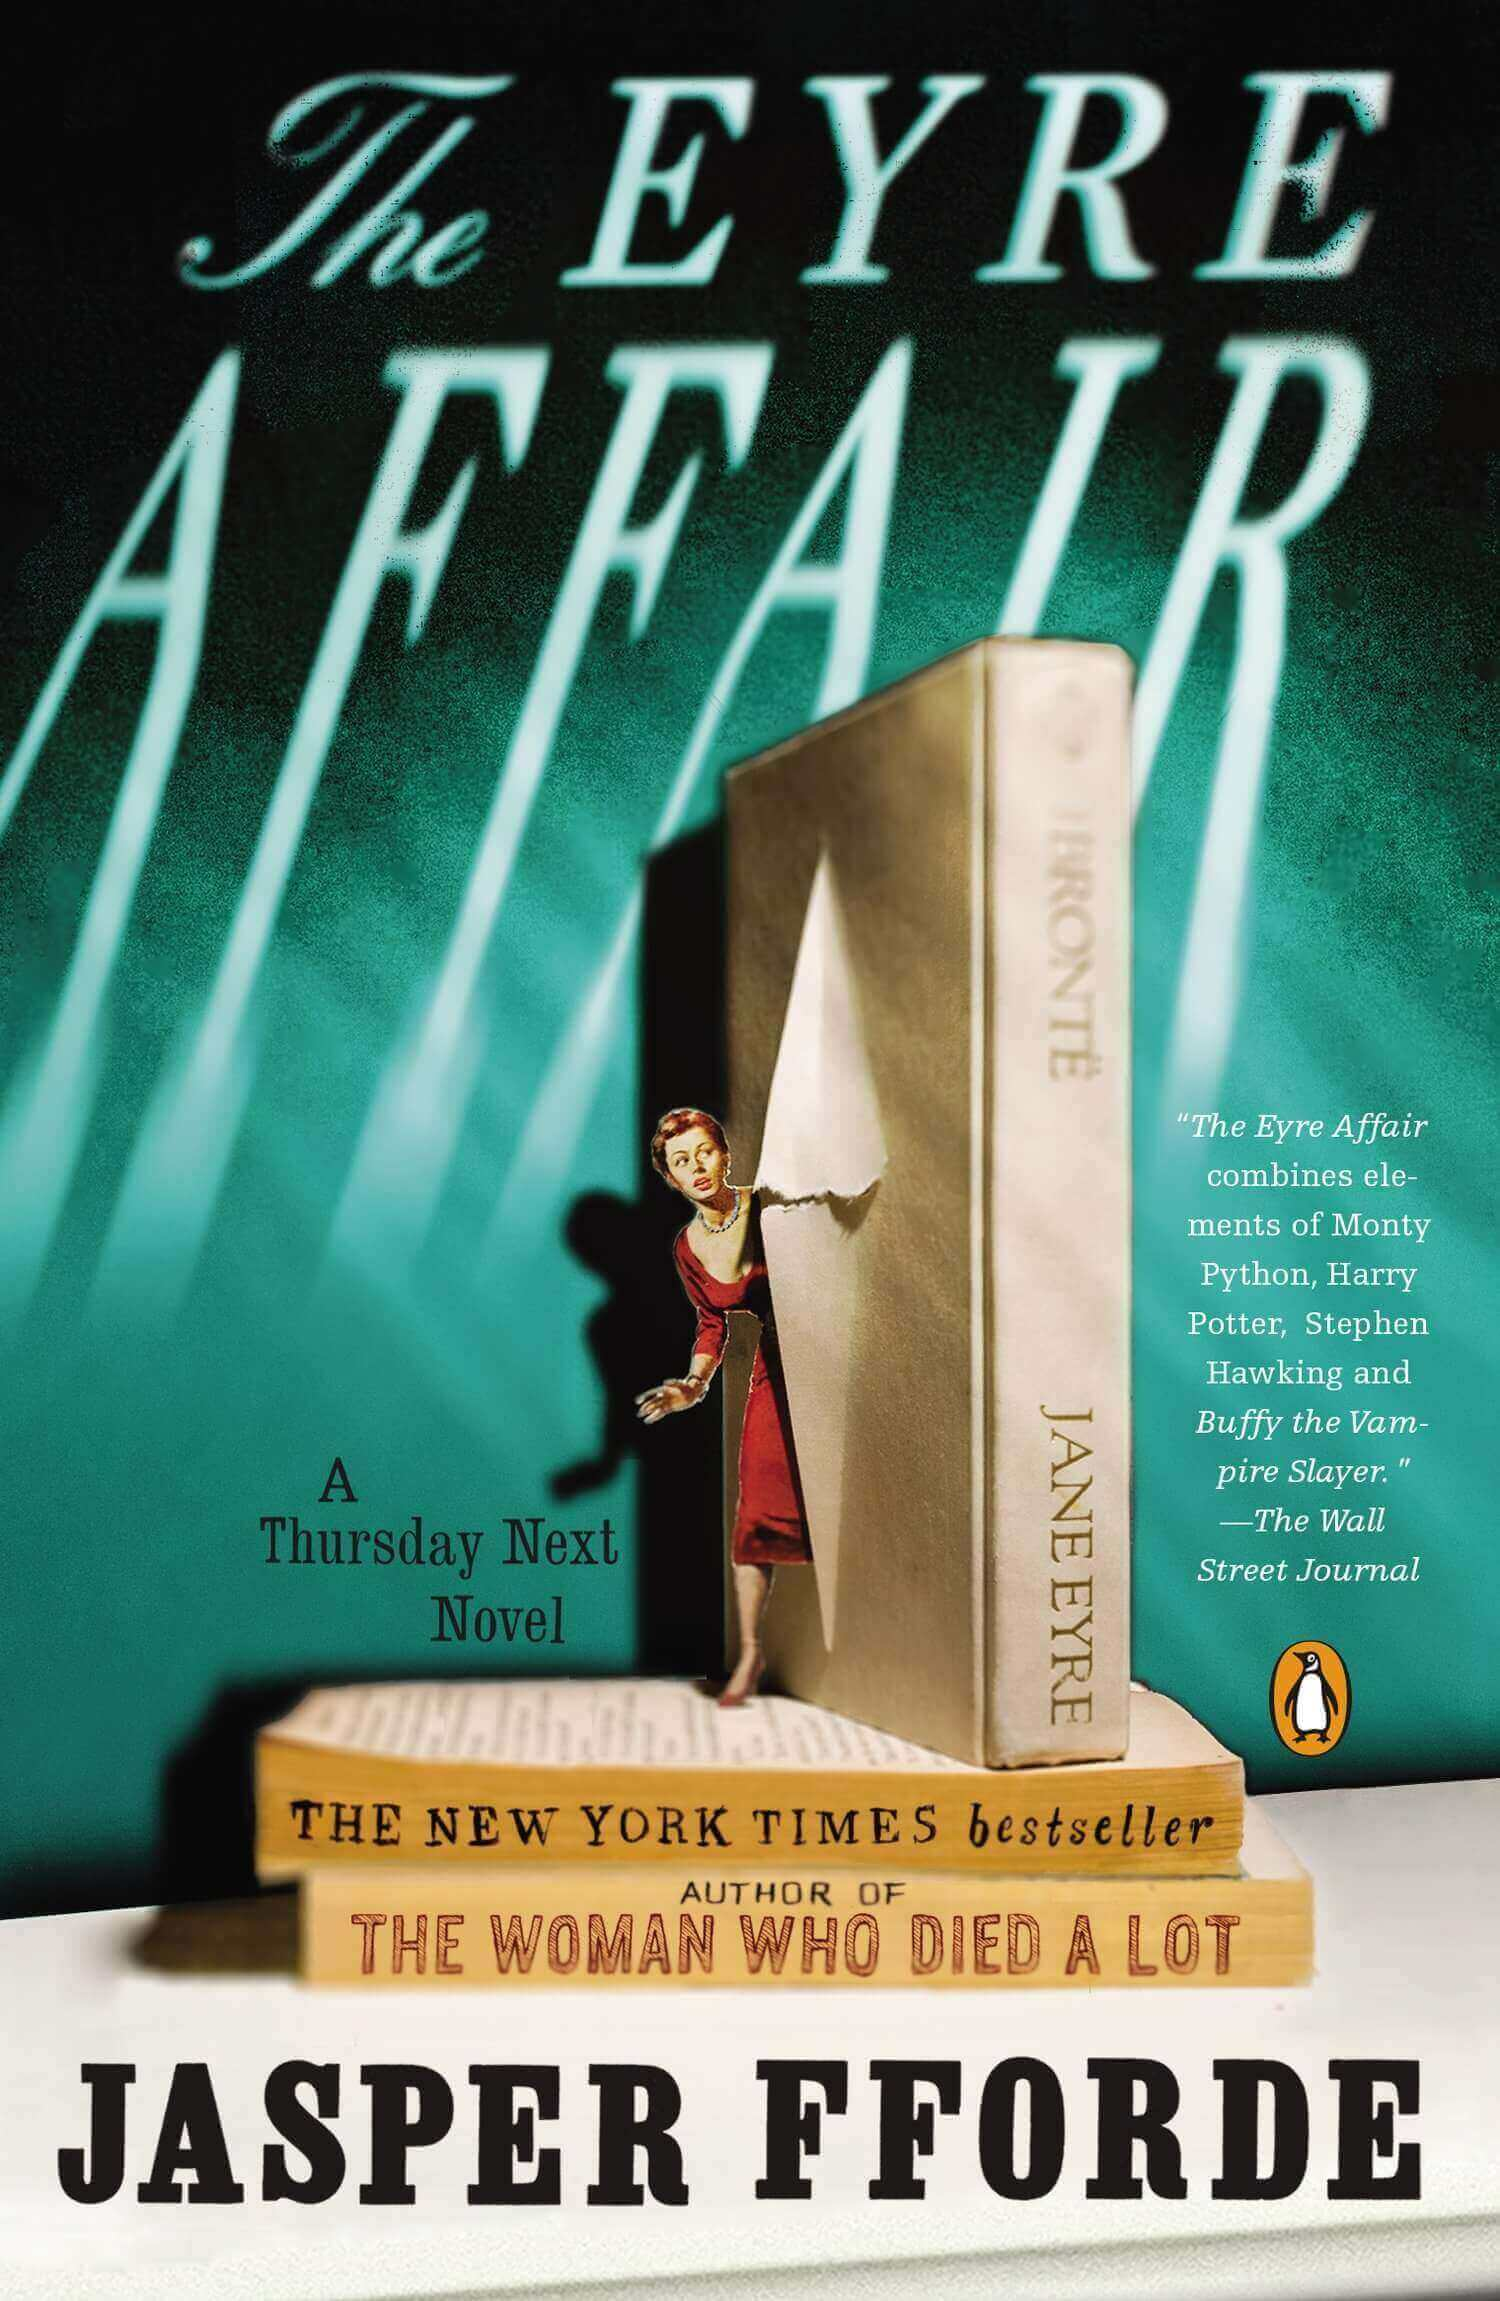 The Eyre Affair by Jasper Fforde